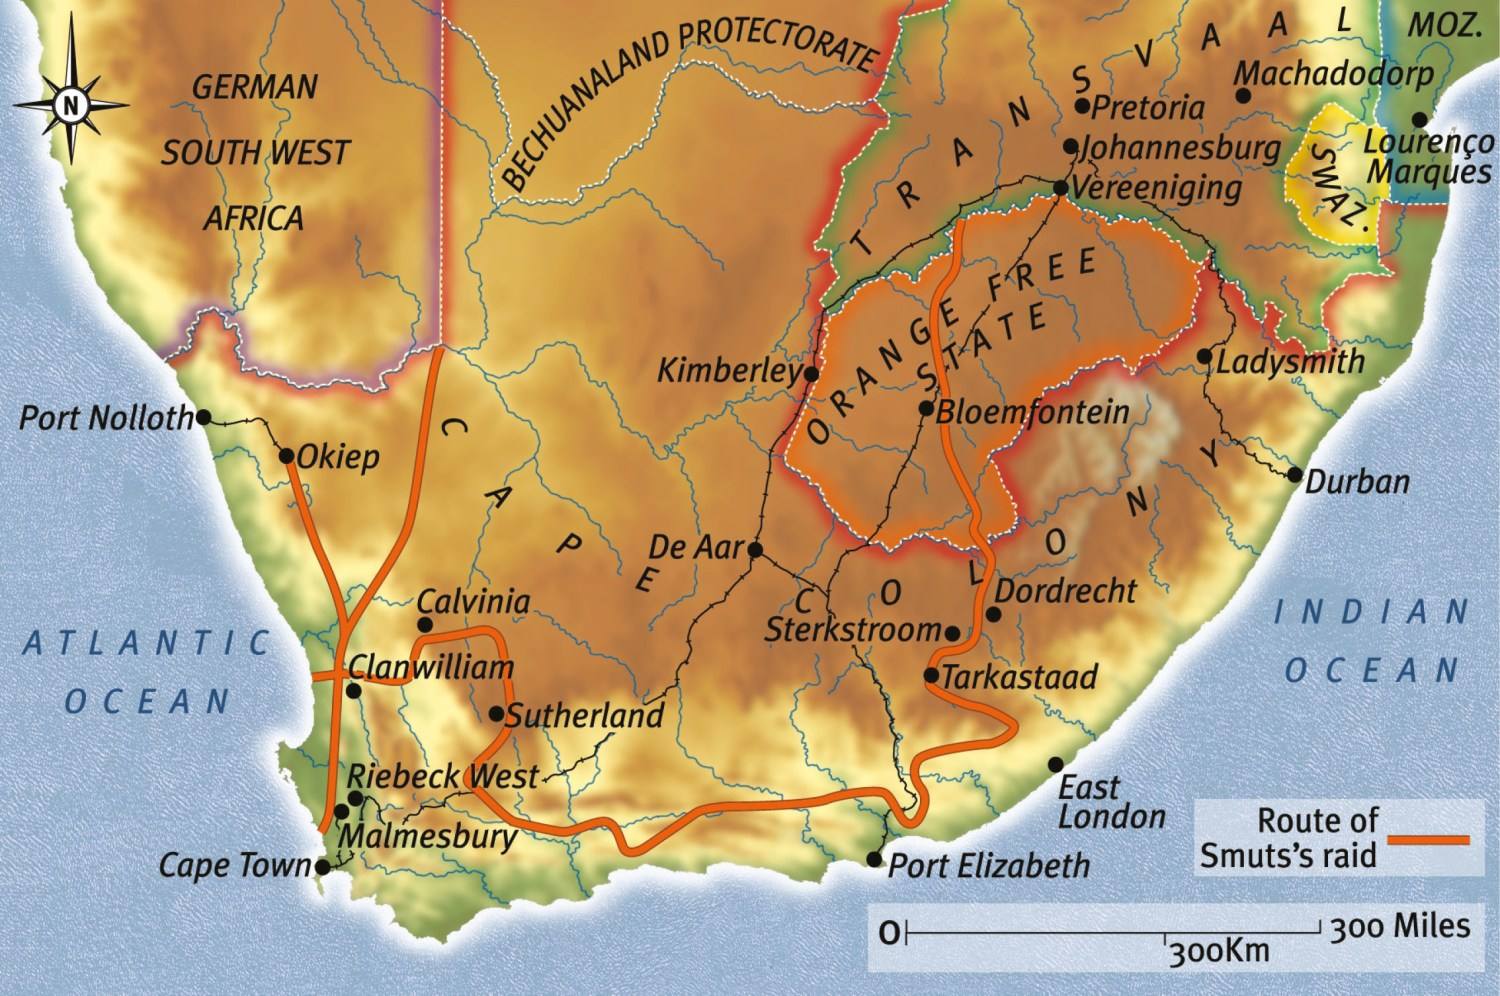 ABOVE Map of Smuts' raid across Cape Colony one of the boldest and most ambitious campaigns of the Boer guerrilla campaign.